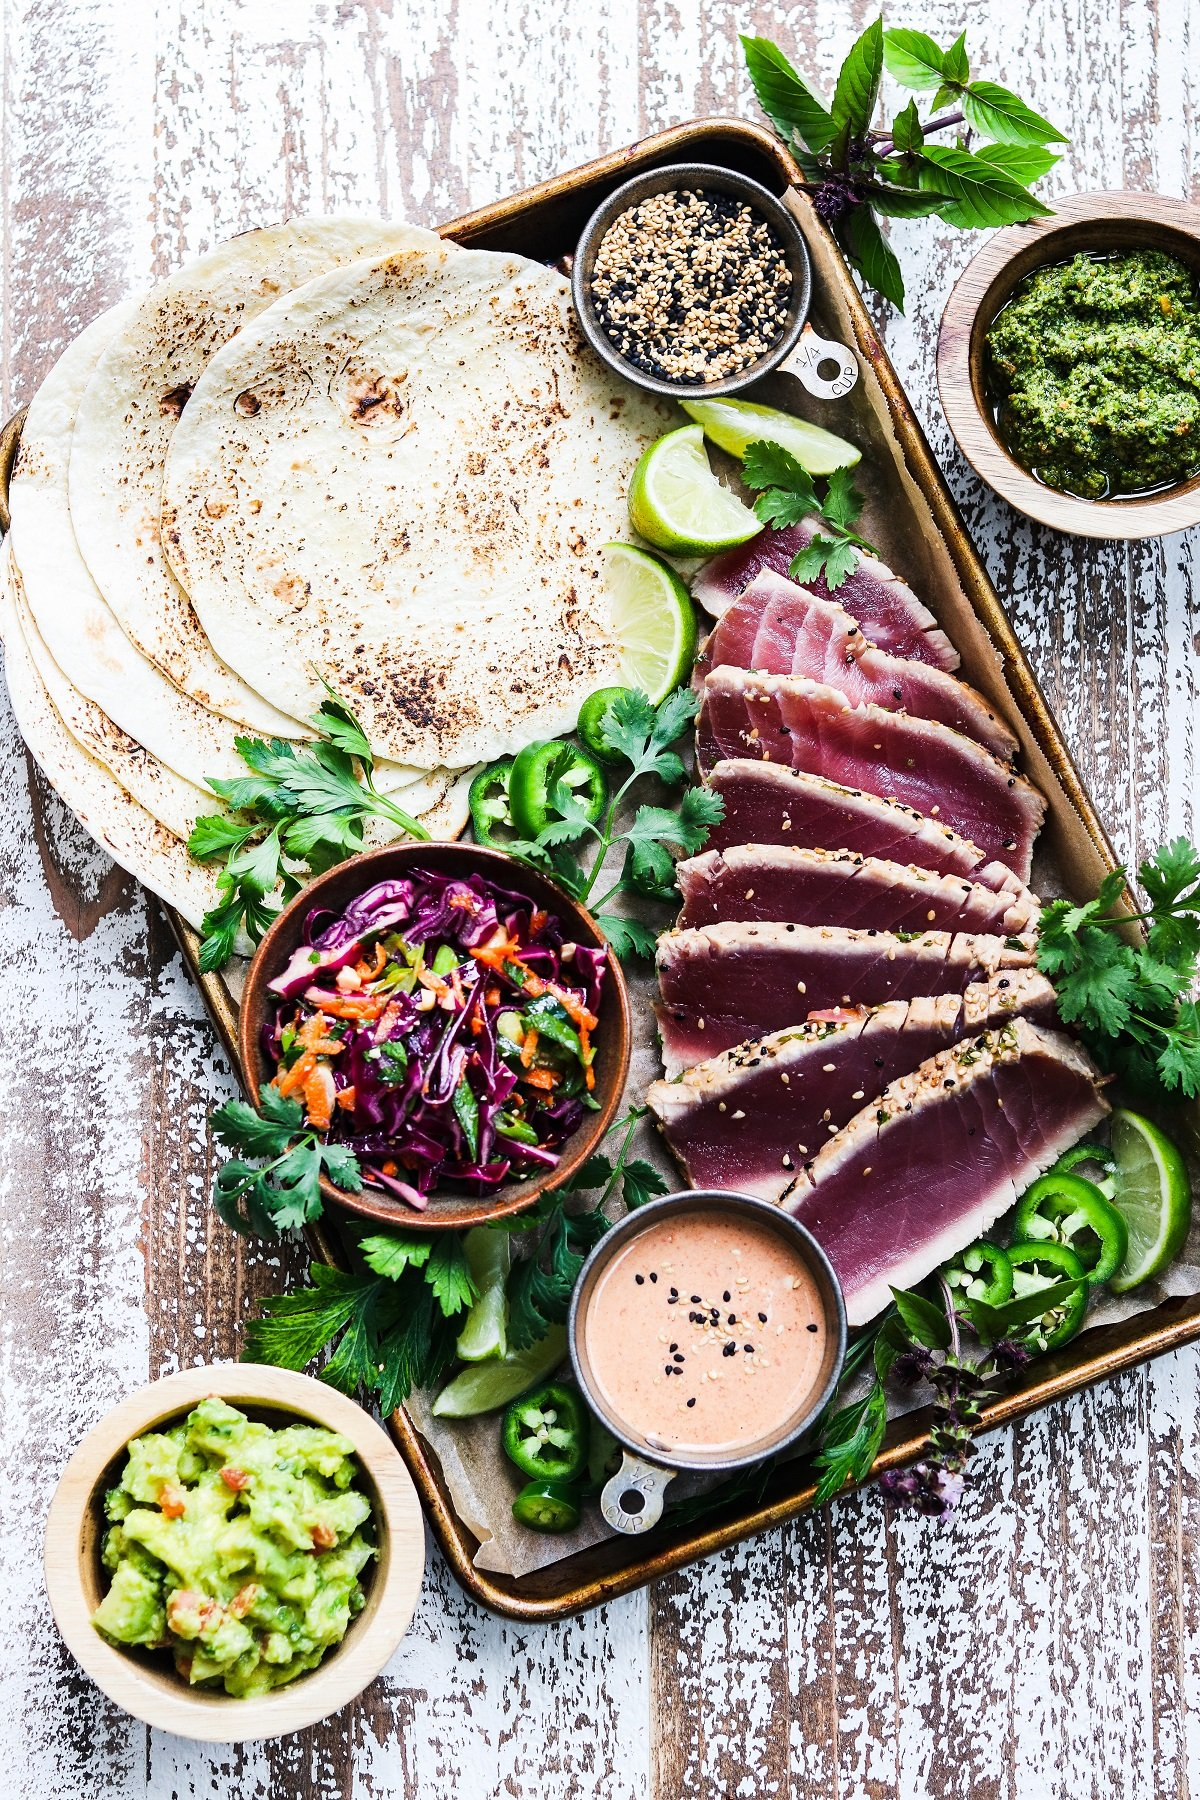 Seared ahi tuna arranged on baking sheet with tortillas, slaw and other taco fixings.